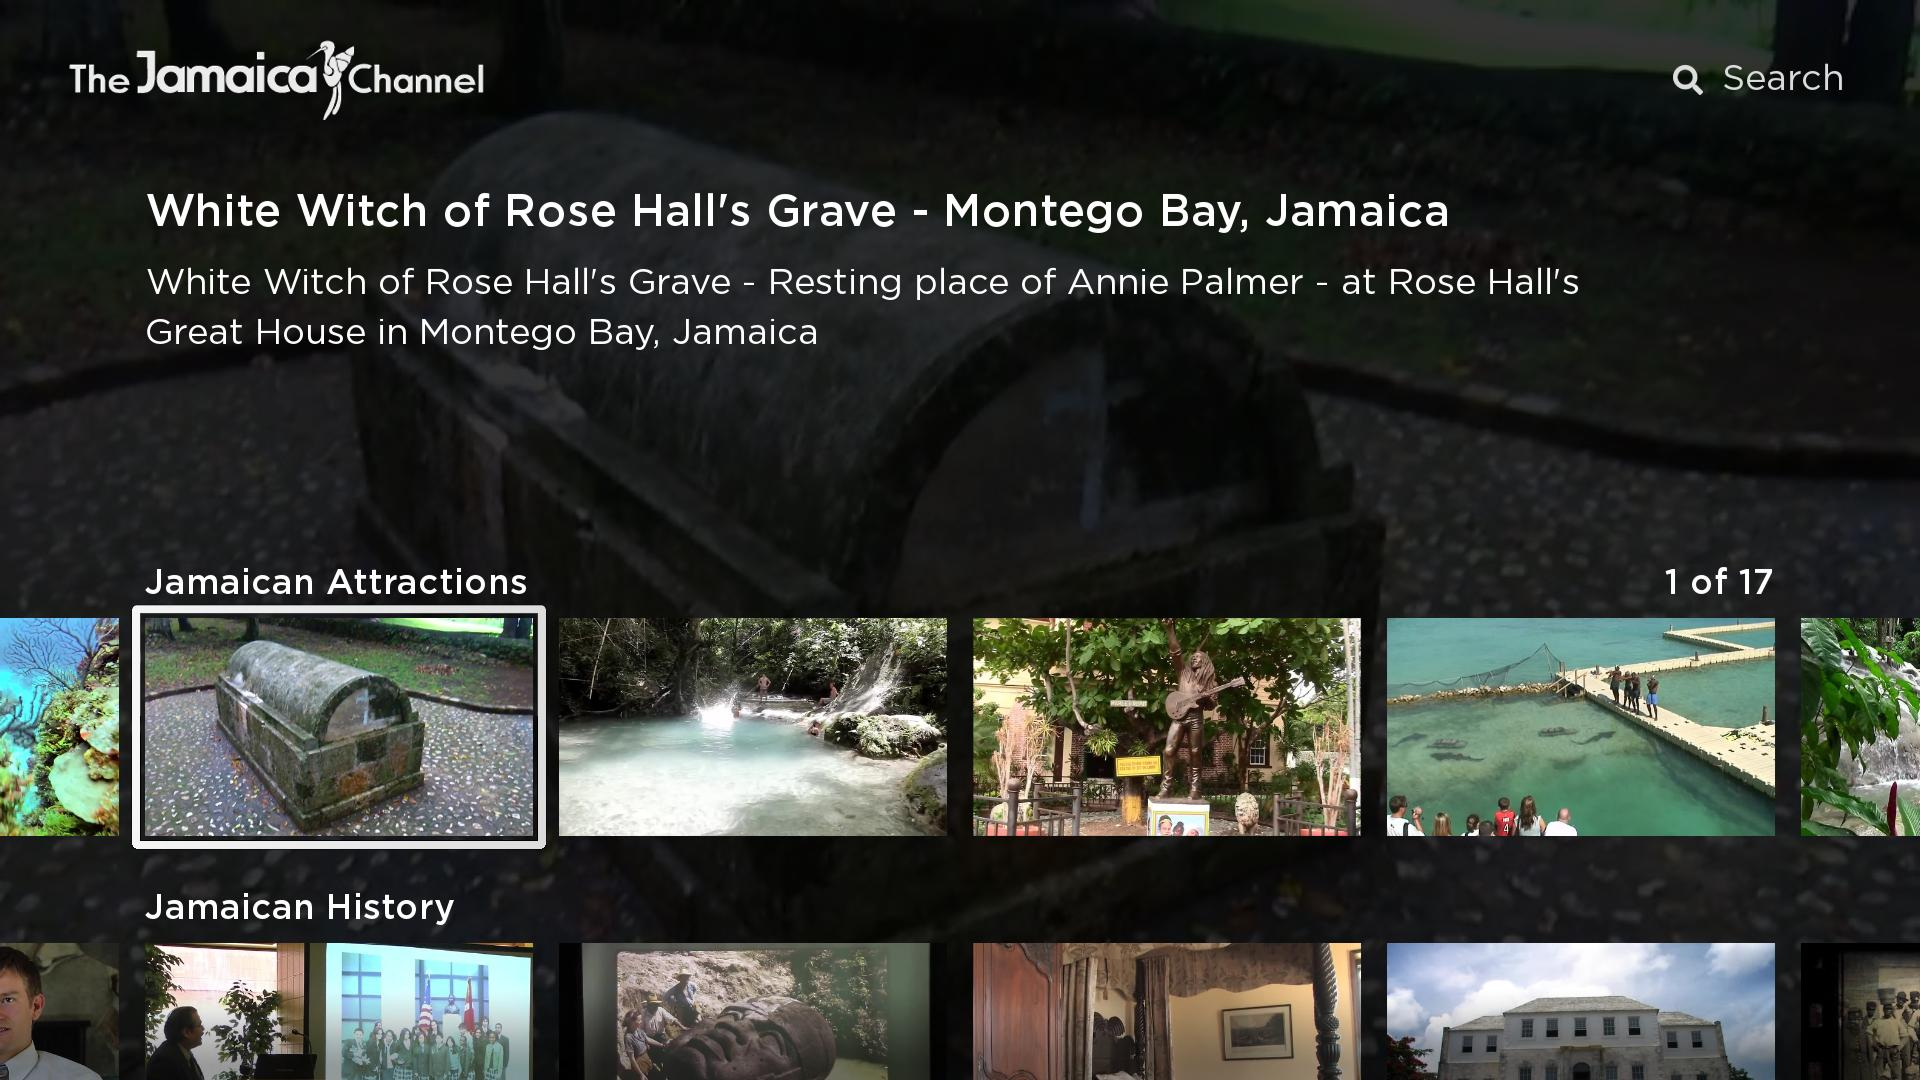 The Jamaica Channel Screenshot 002